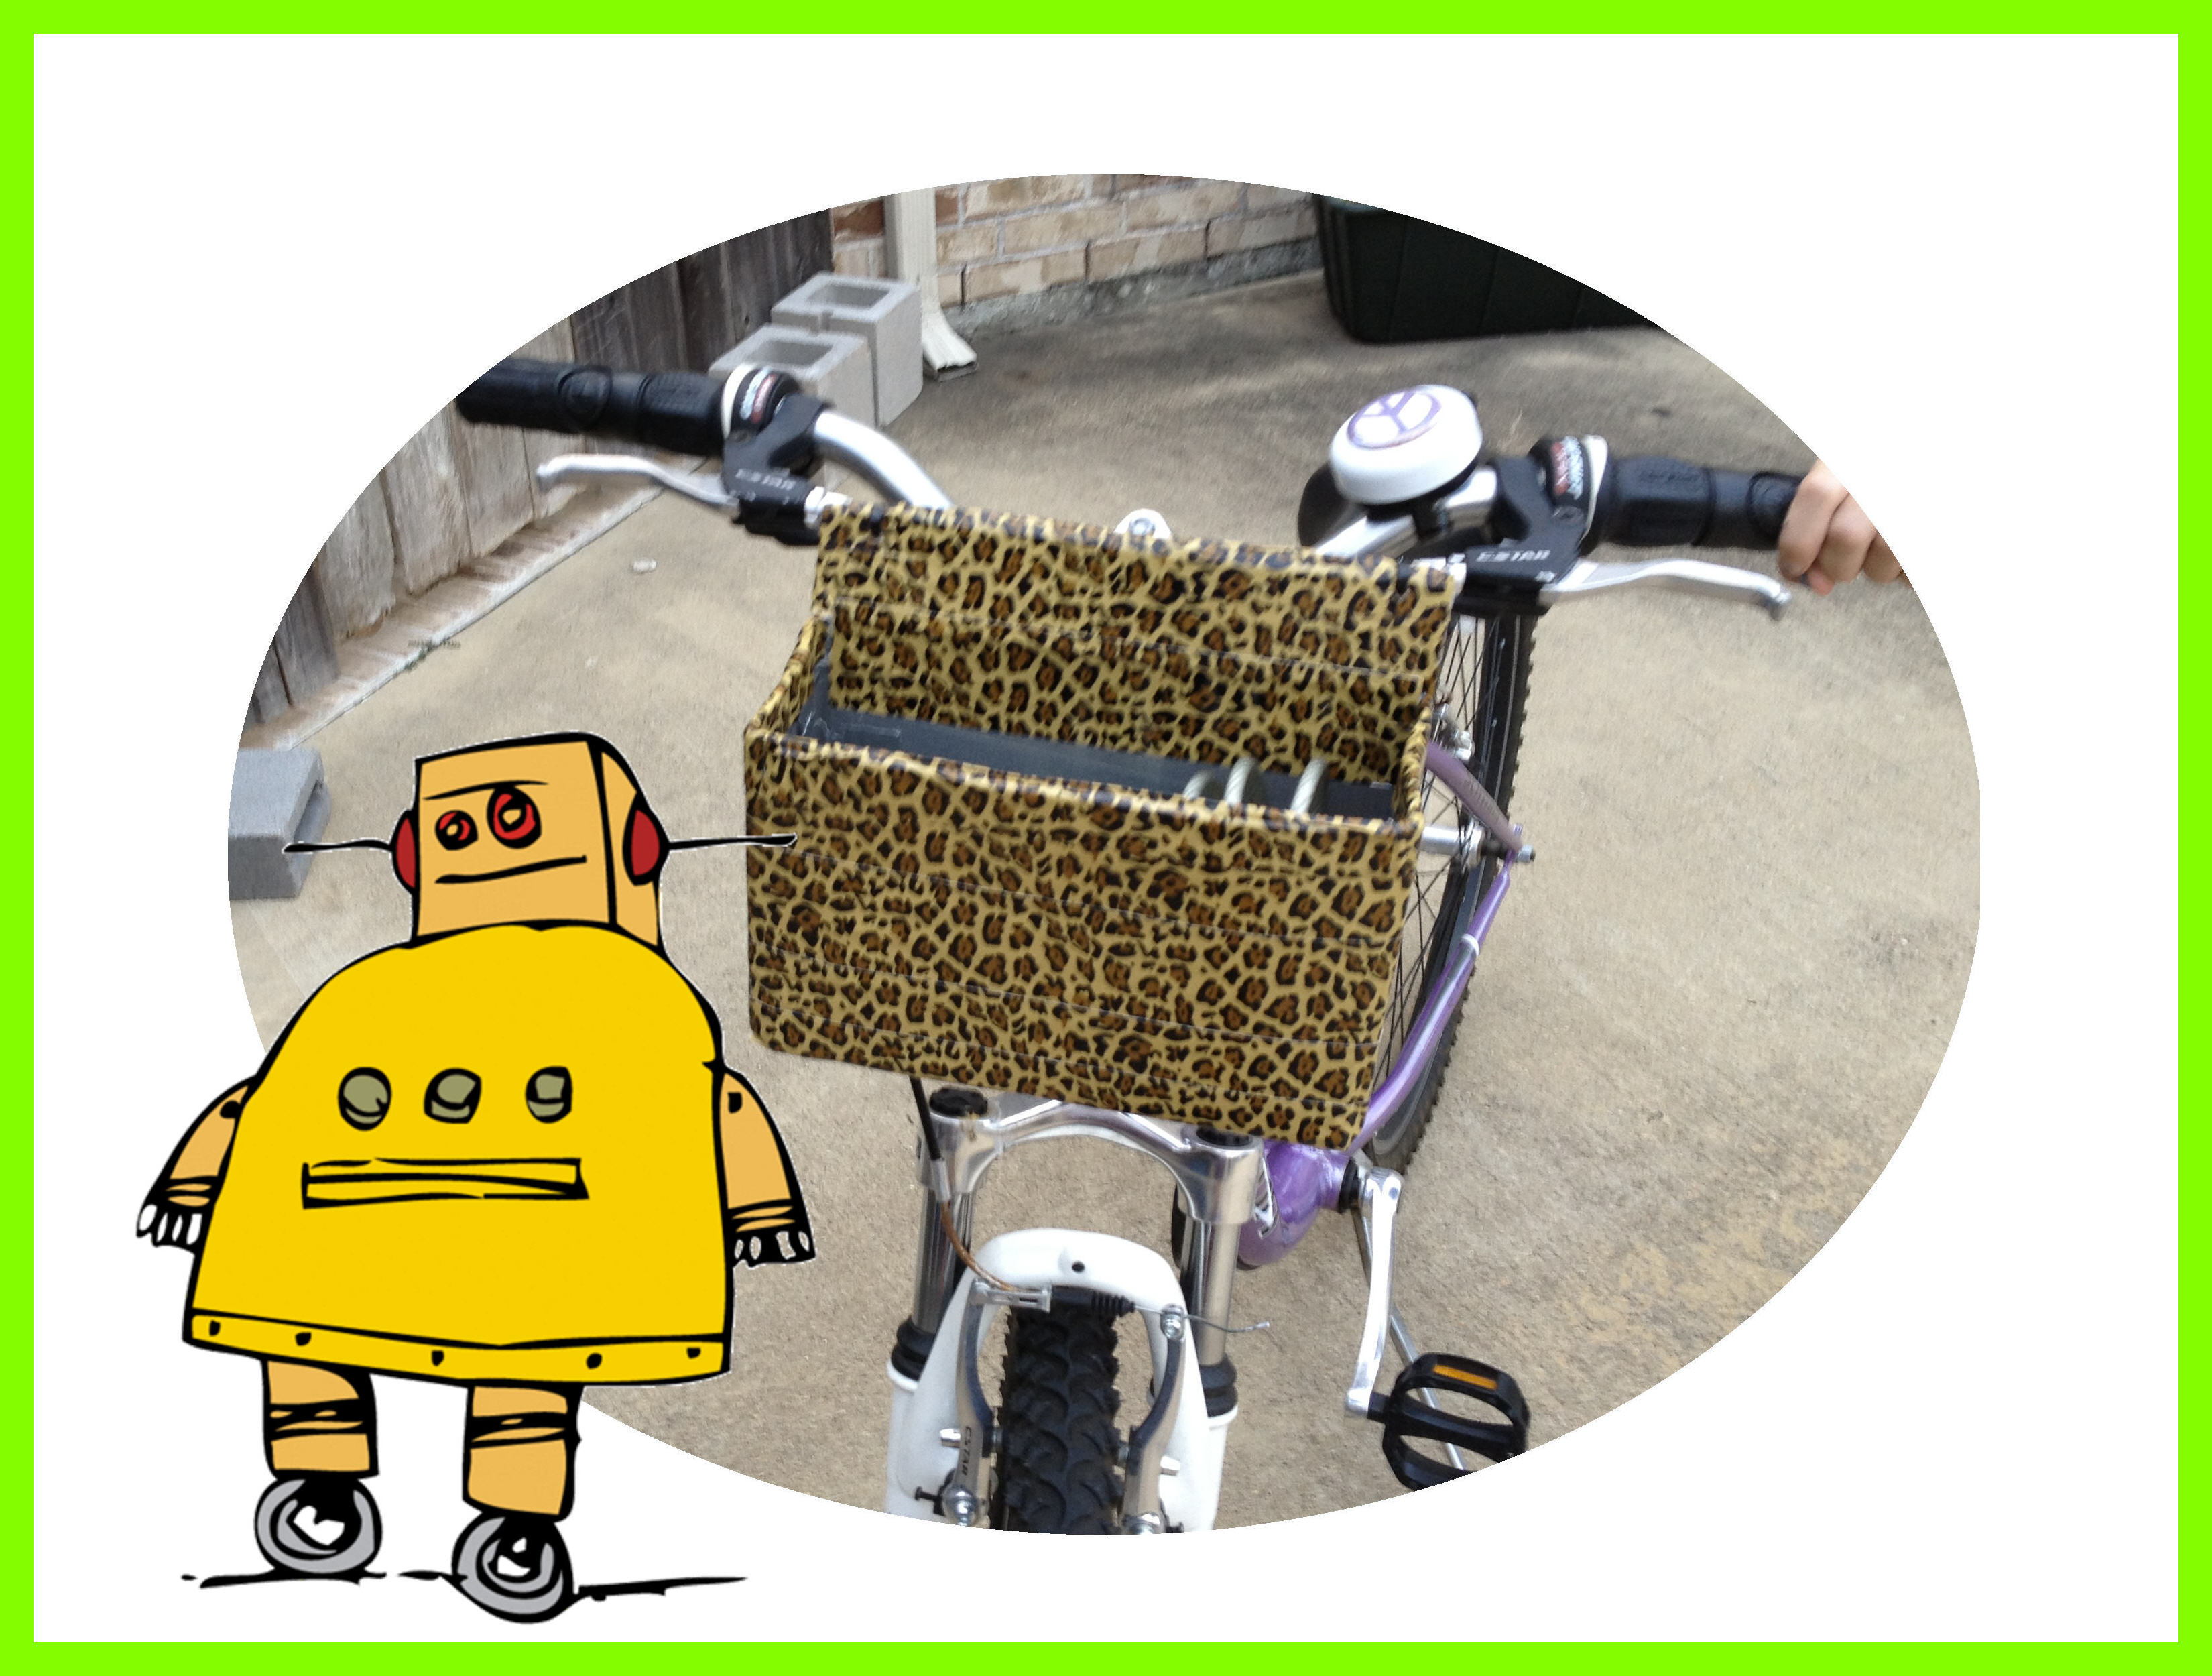 Super-Deluxe Custom Bike Basket for Under $5.00, (Using Cardboard, Wire & Duct Tape)